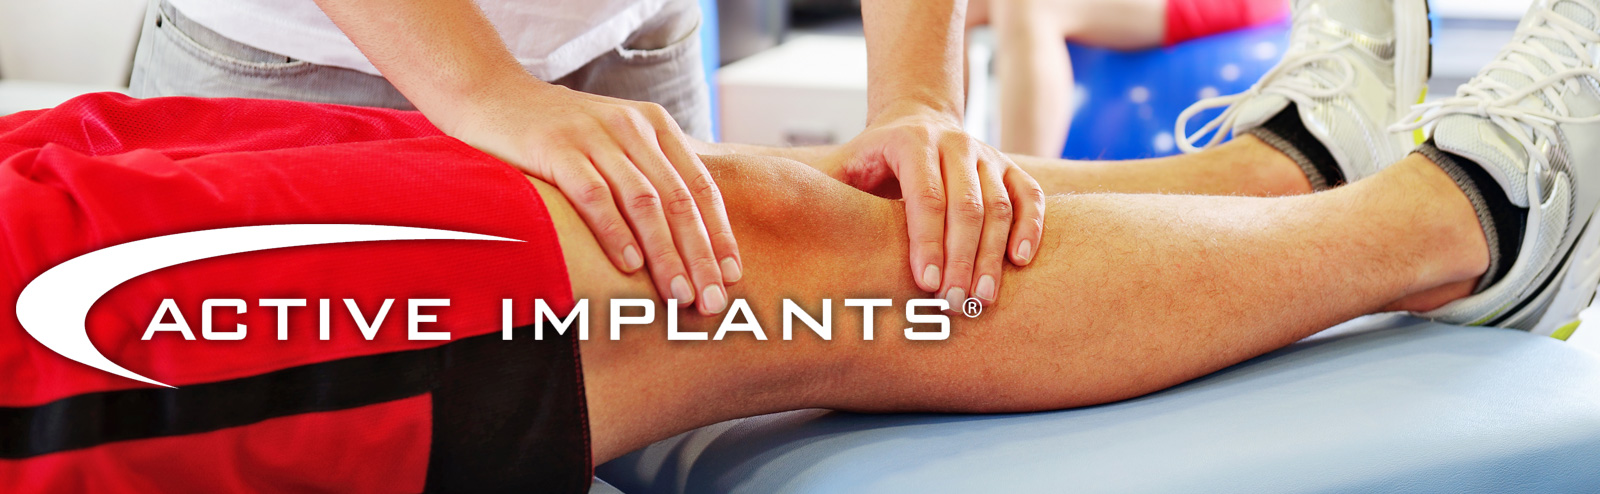 Active Implants logo over an image of a doctor examining a patient's knee